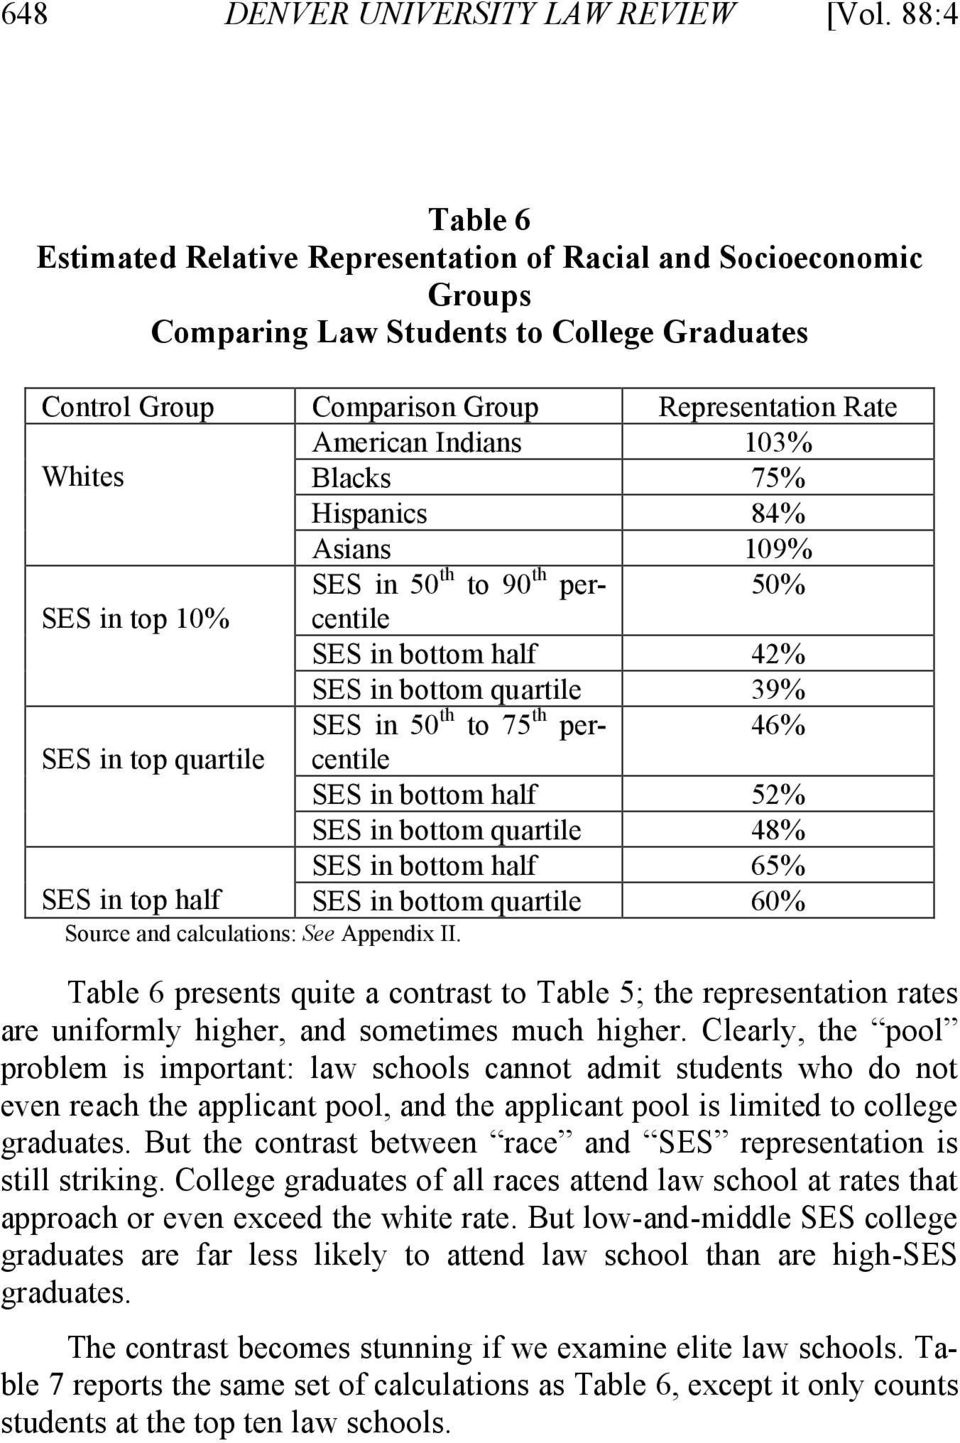 Whites Blacks 75% Hispanics 84% Asians 109% SES in 50 th to 90 th percentile 50% SES in top 10% SES in bottom half 42% SES in bottom quartile 39% SES in 50 th to 75 th percentile 46% SES in top